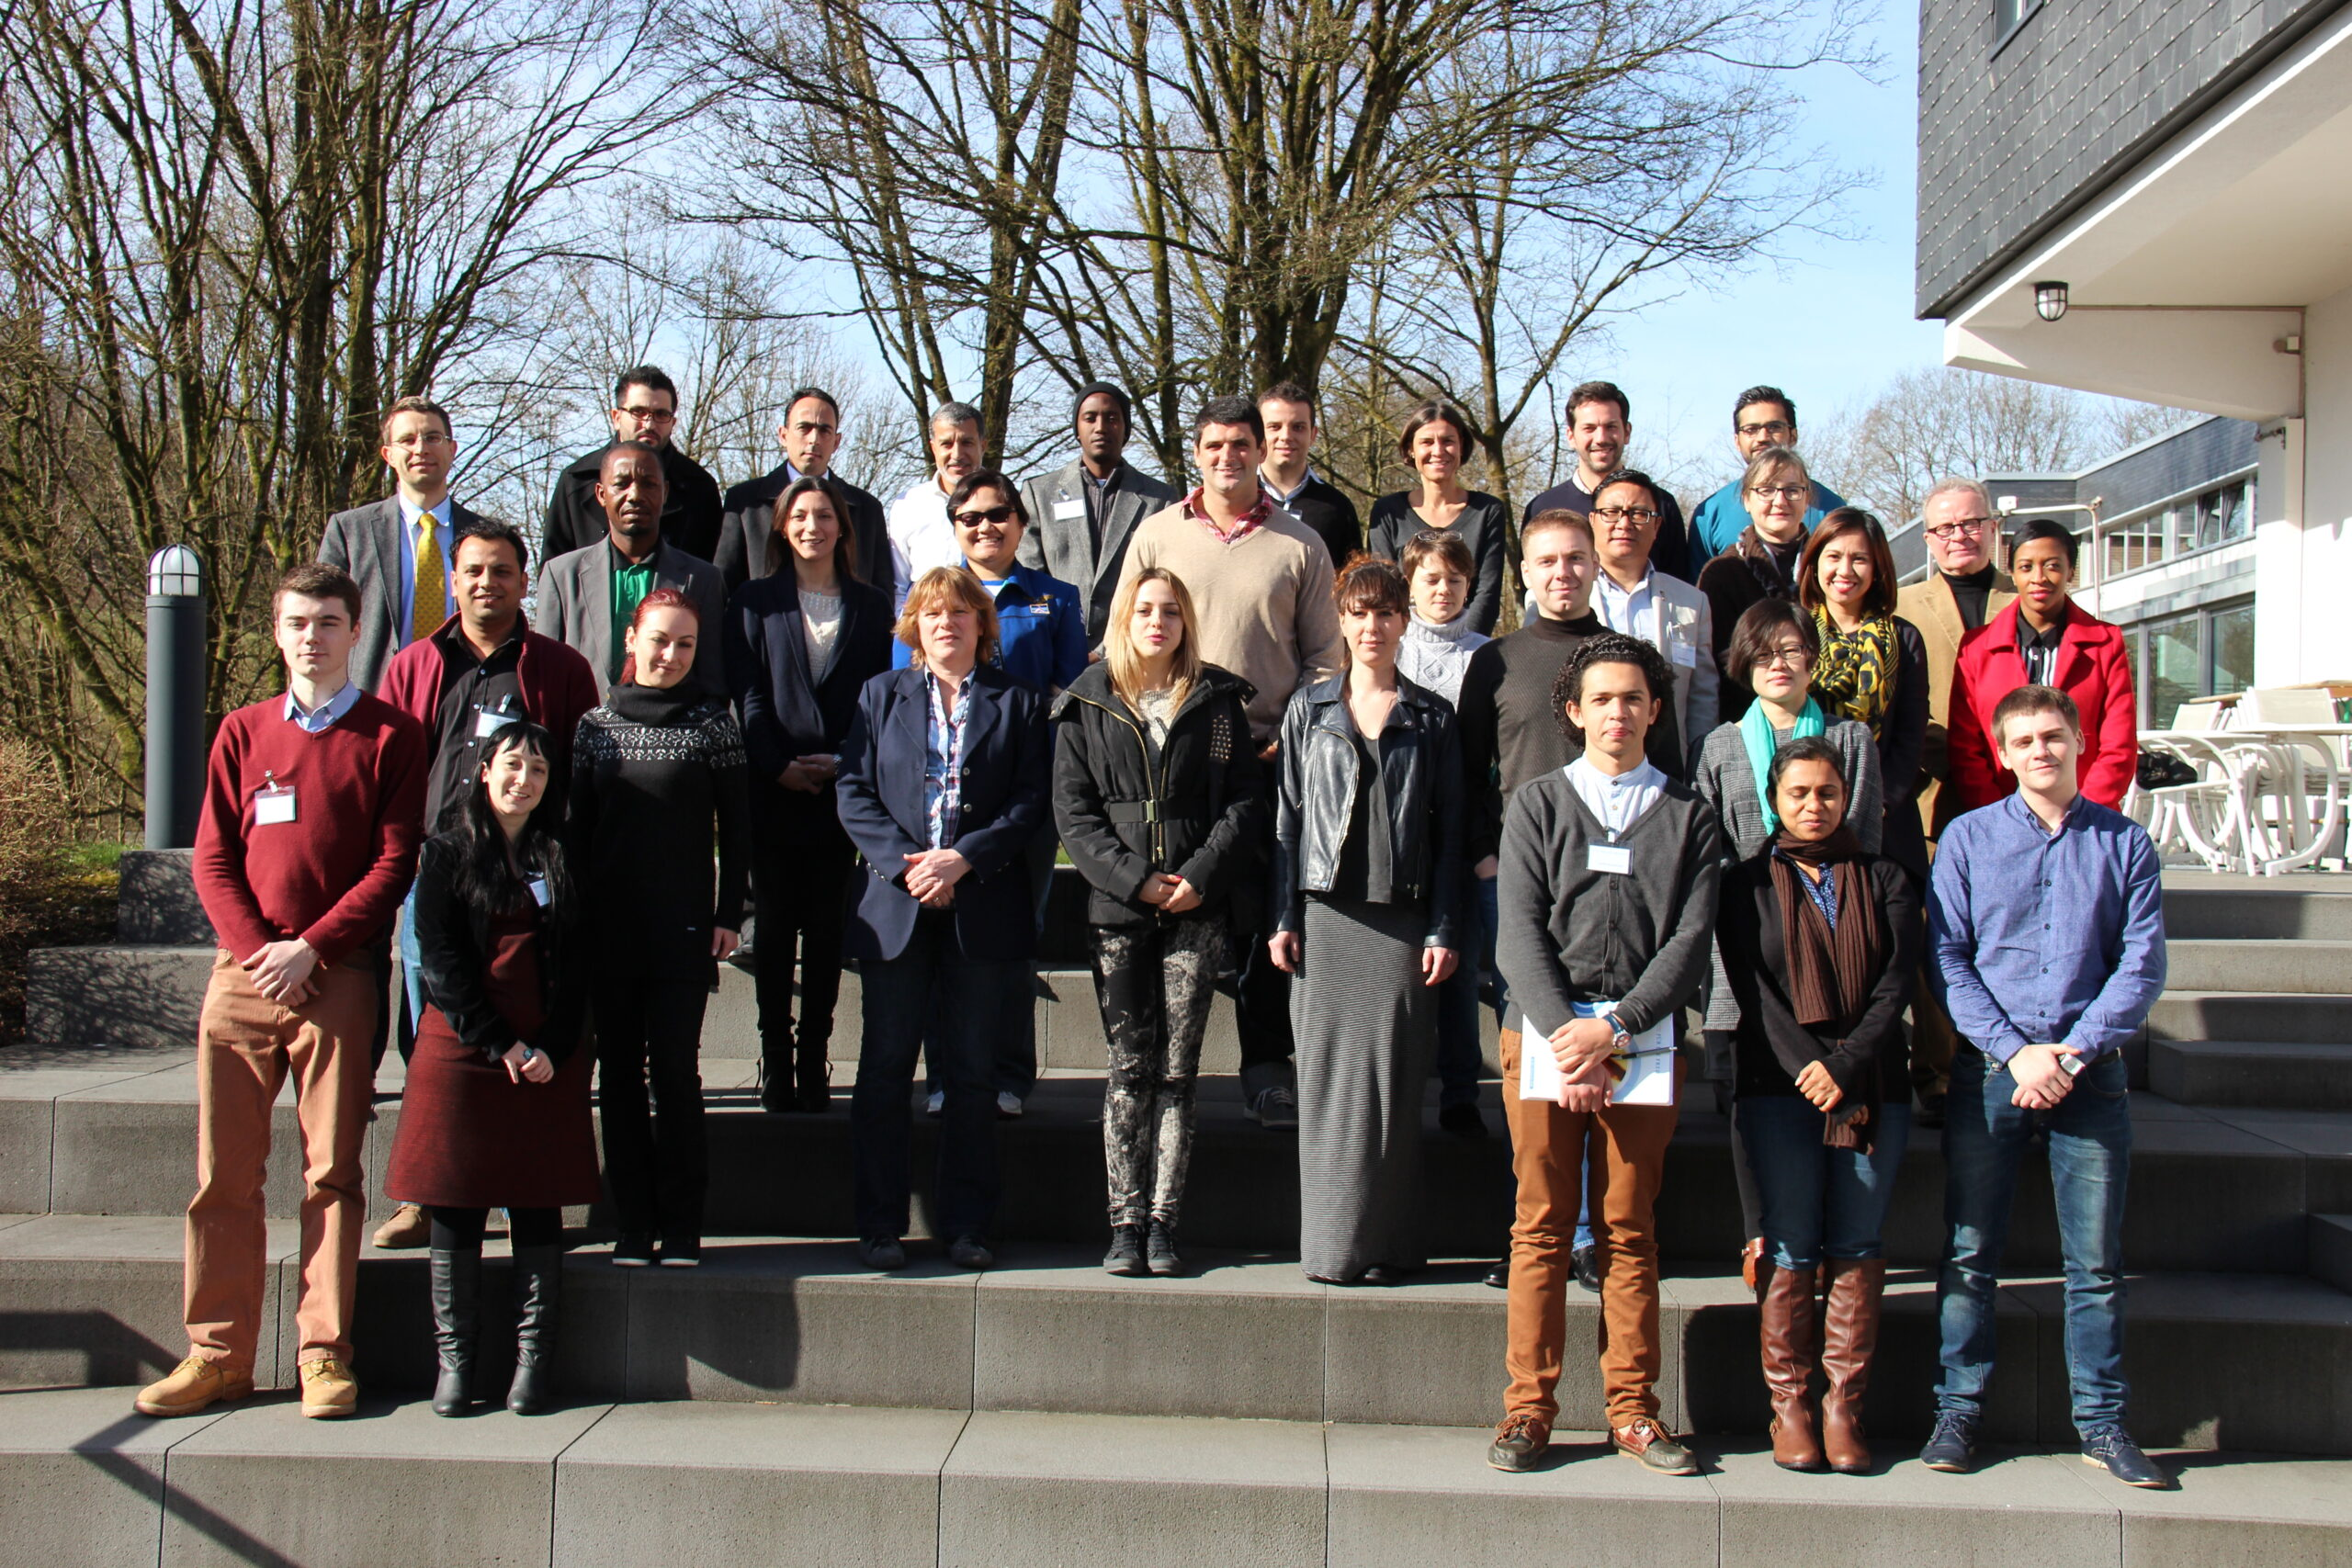 Mr. Palden Dhondup with fellow participants of leadership work on good governance, organised by Friedrich Naumann Foundation in Brandenburg, Germany, March 2014.